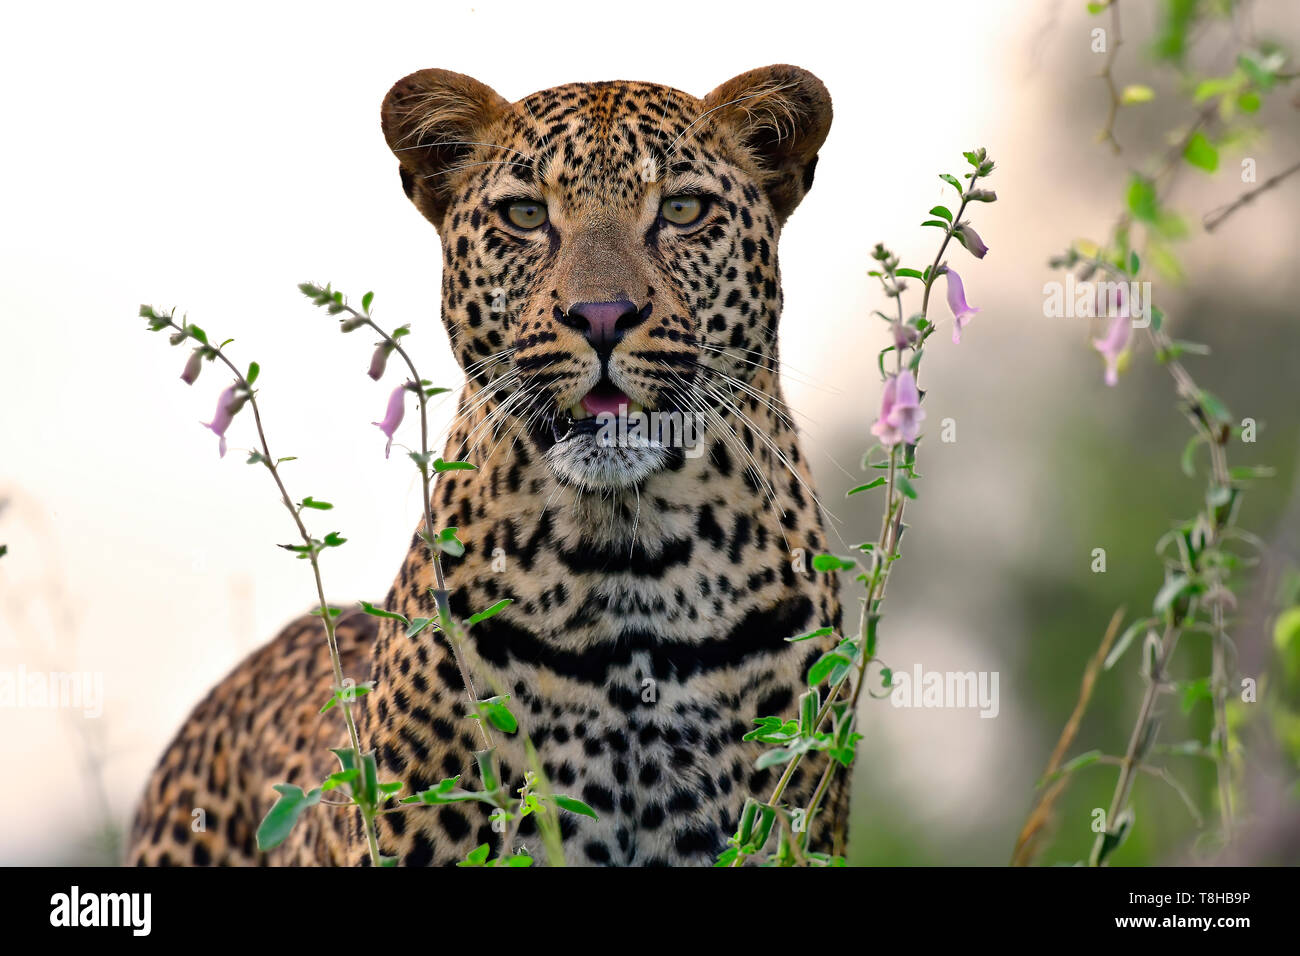 Leopard Panthera Pardus hunting in veld Kruger National Park, South Africa - Stock Image